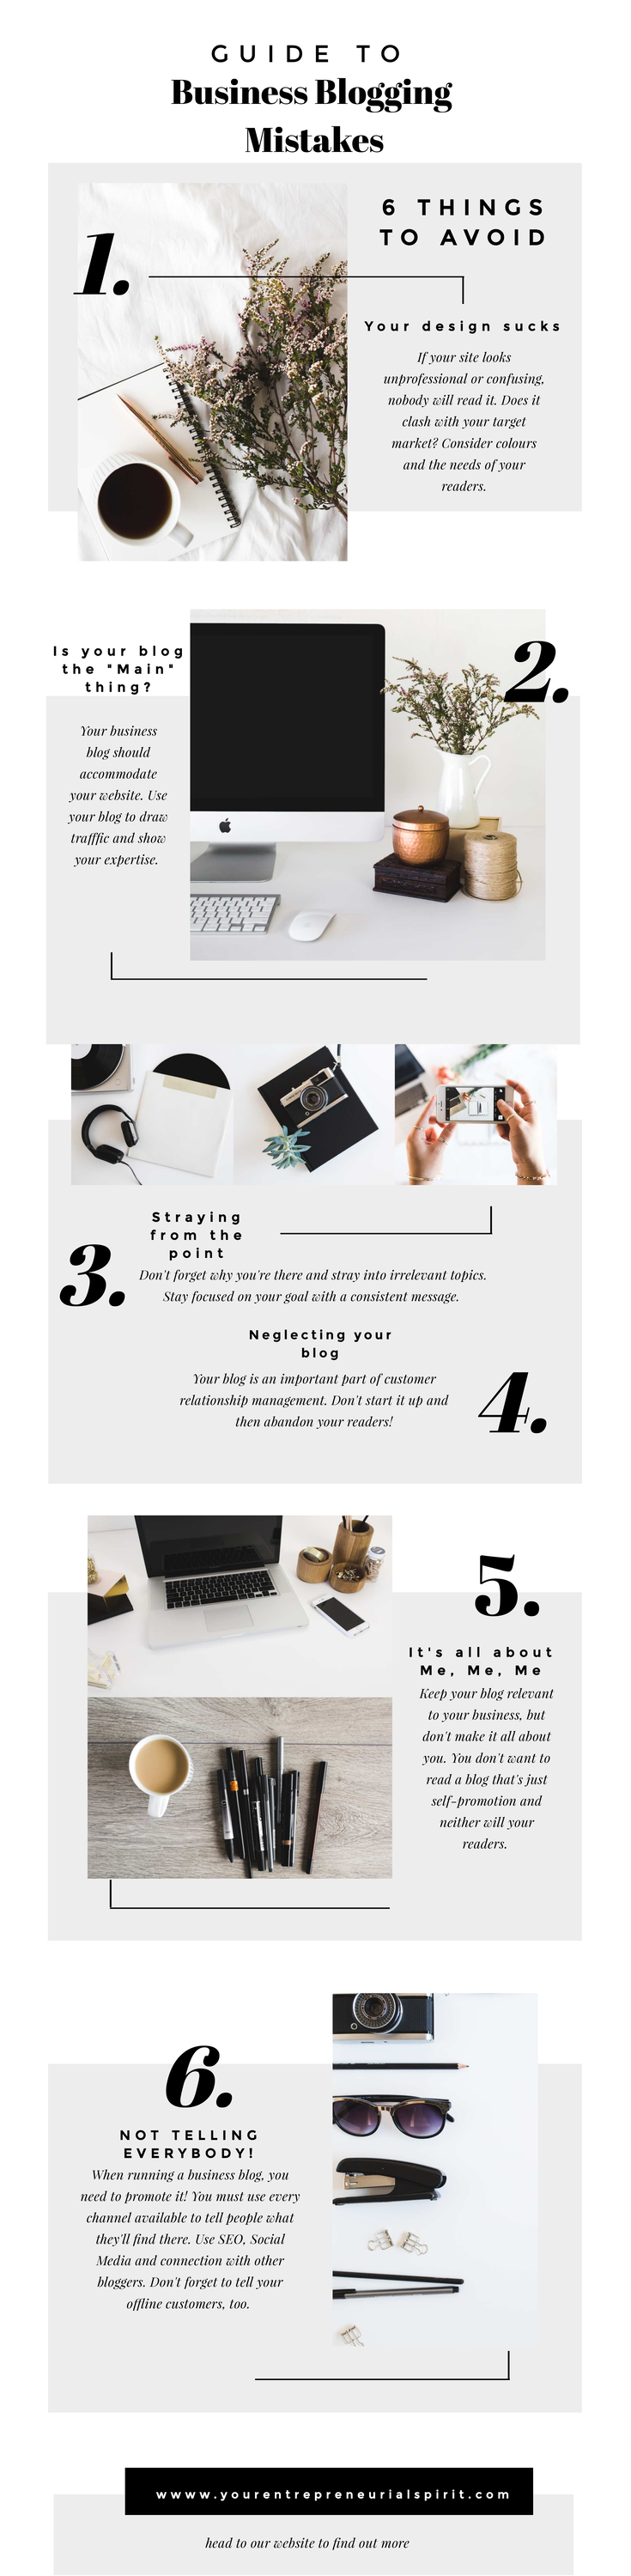 Business blogging mistakes to avoid Infographic